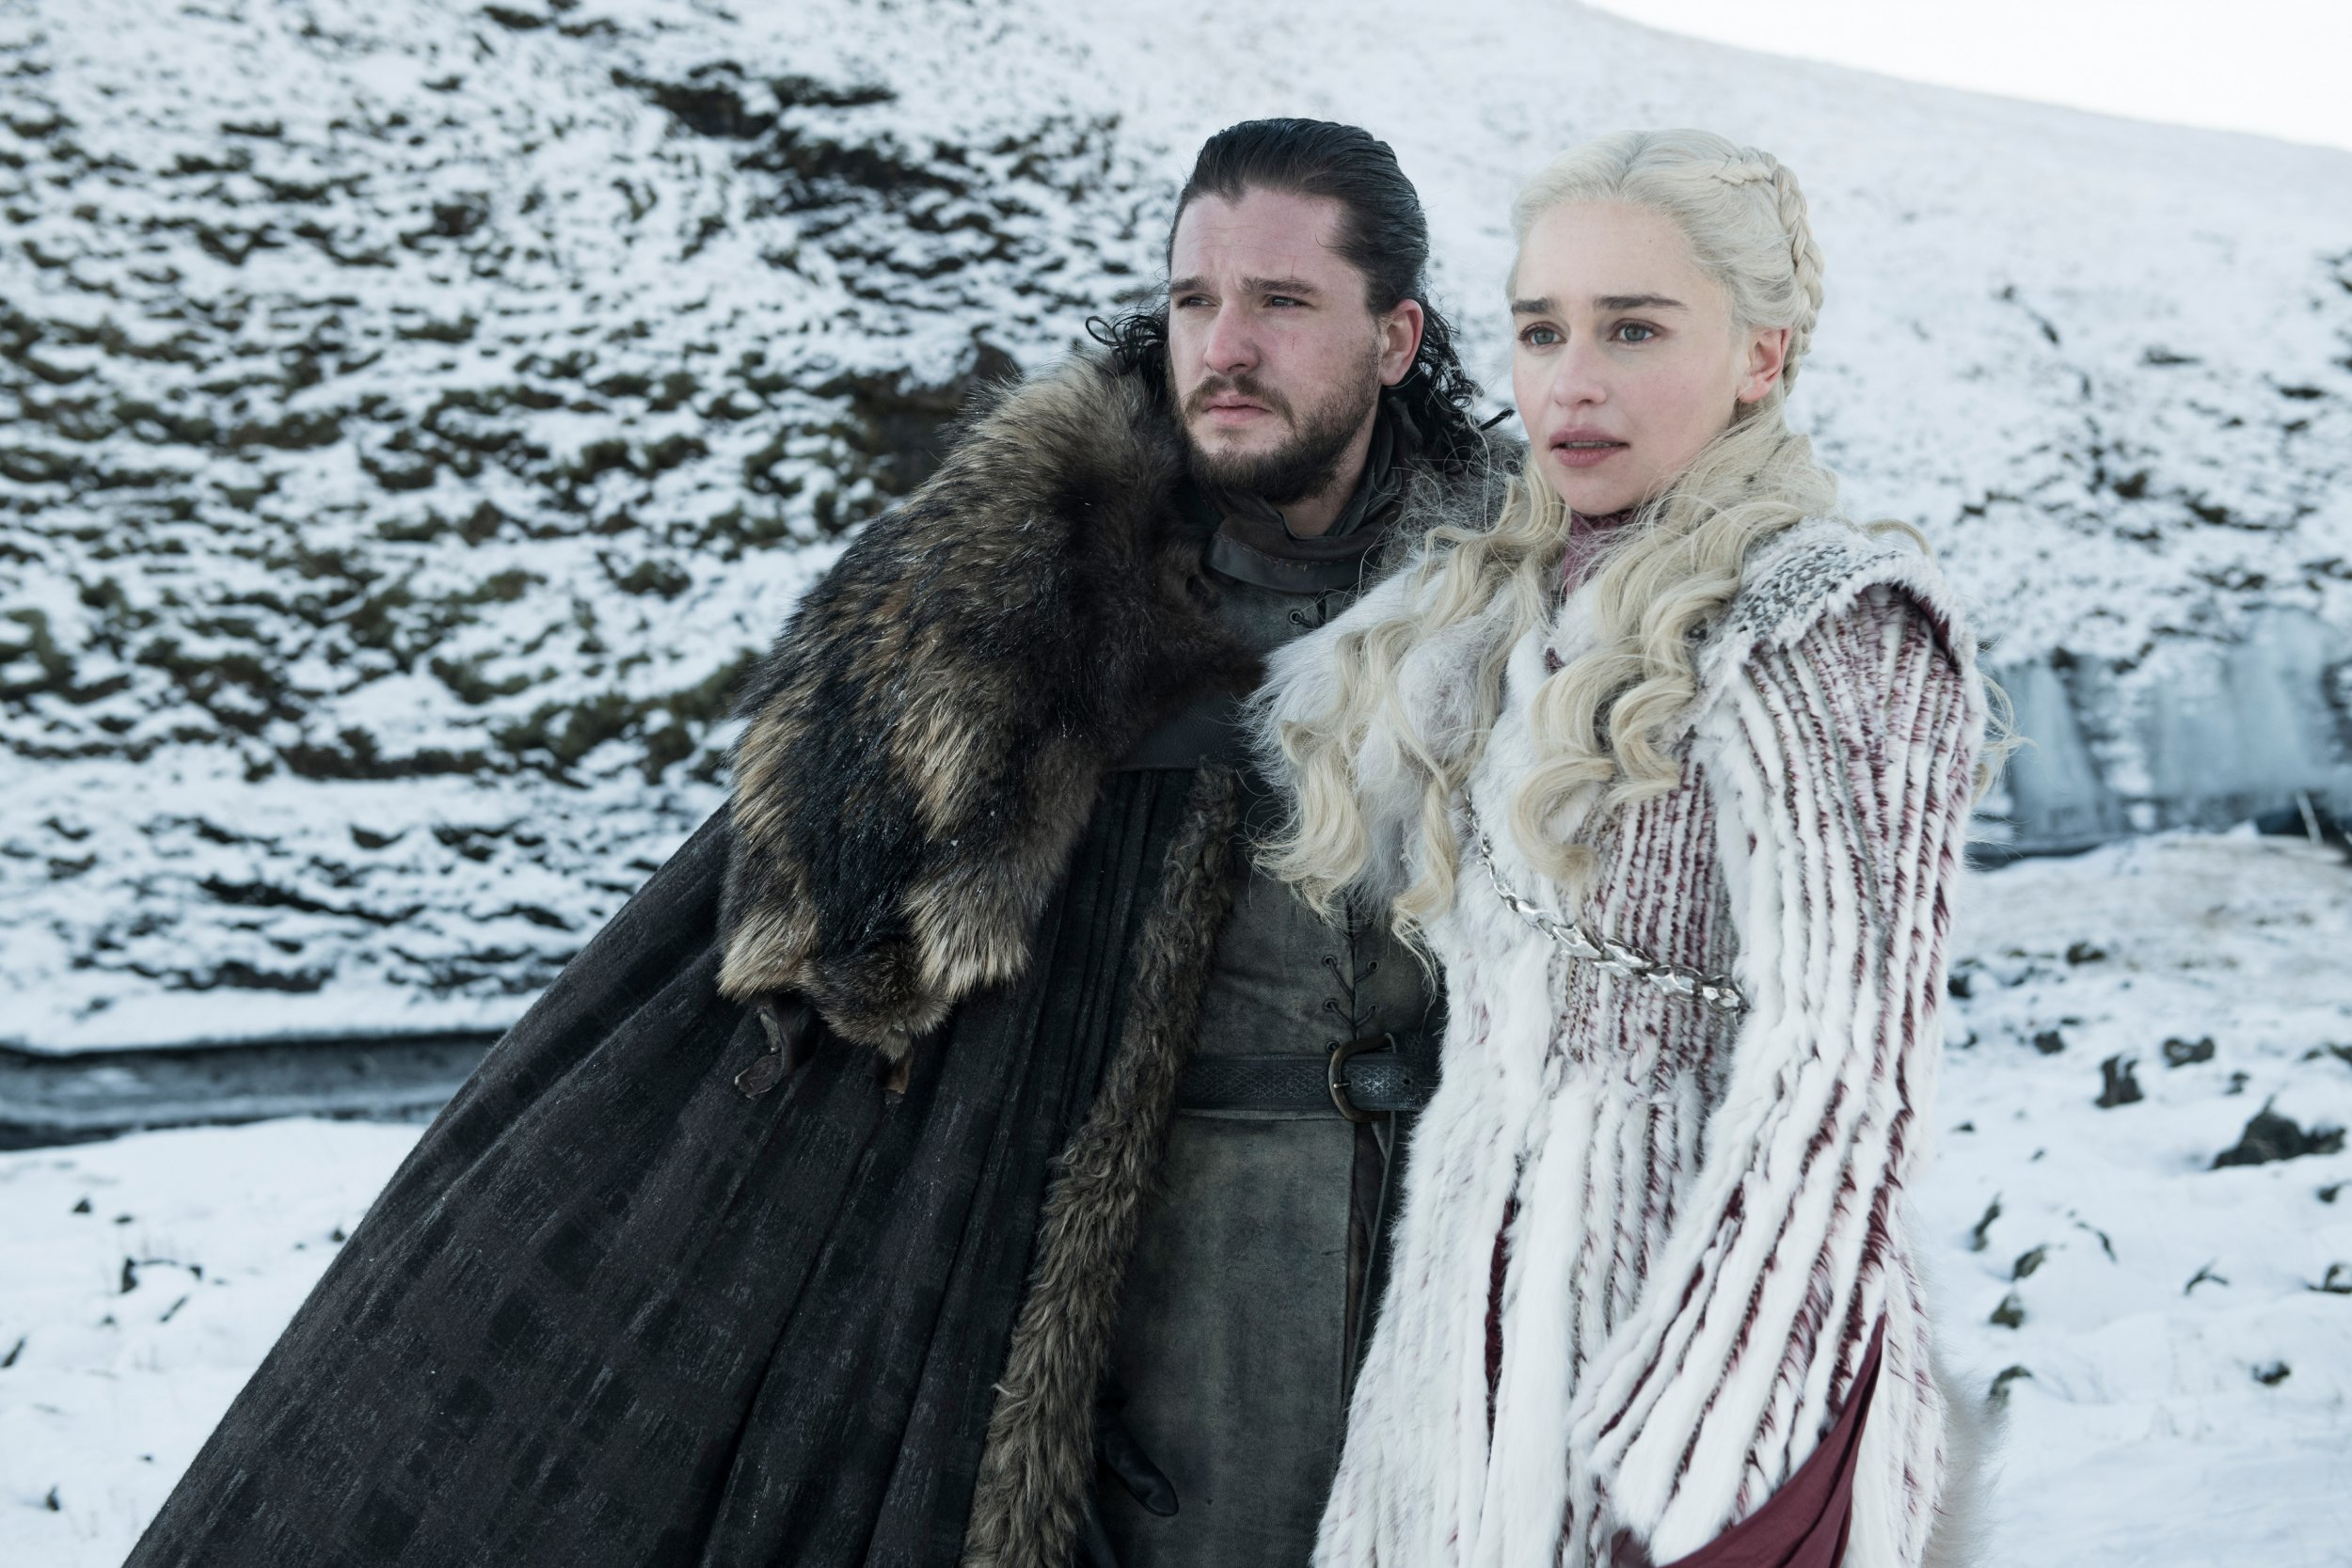 Is HBO Go, HBO Now Down or Not Working? Streaming Platforms Crash Ahead of 'Game of Thrones' Season 8 ...